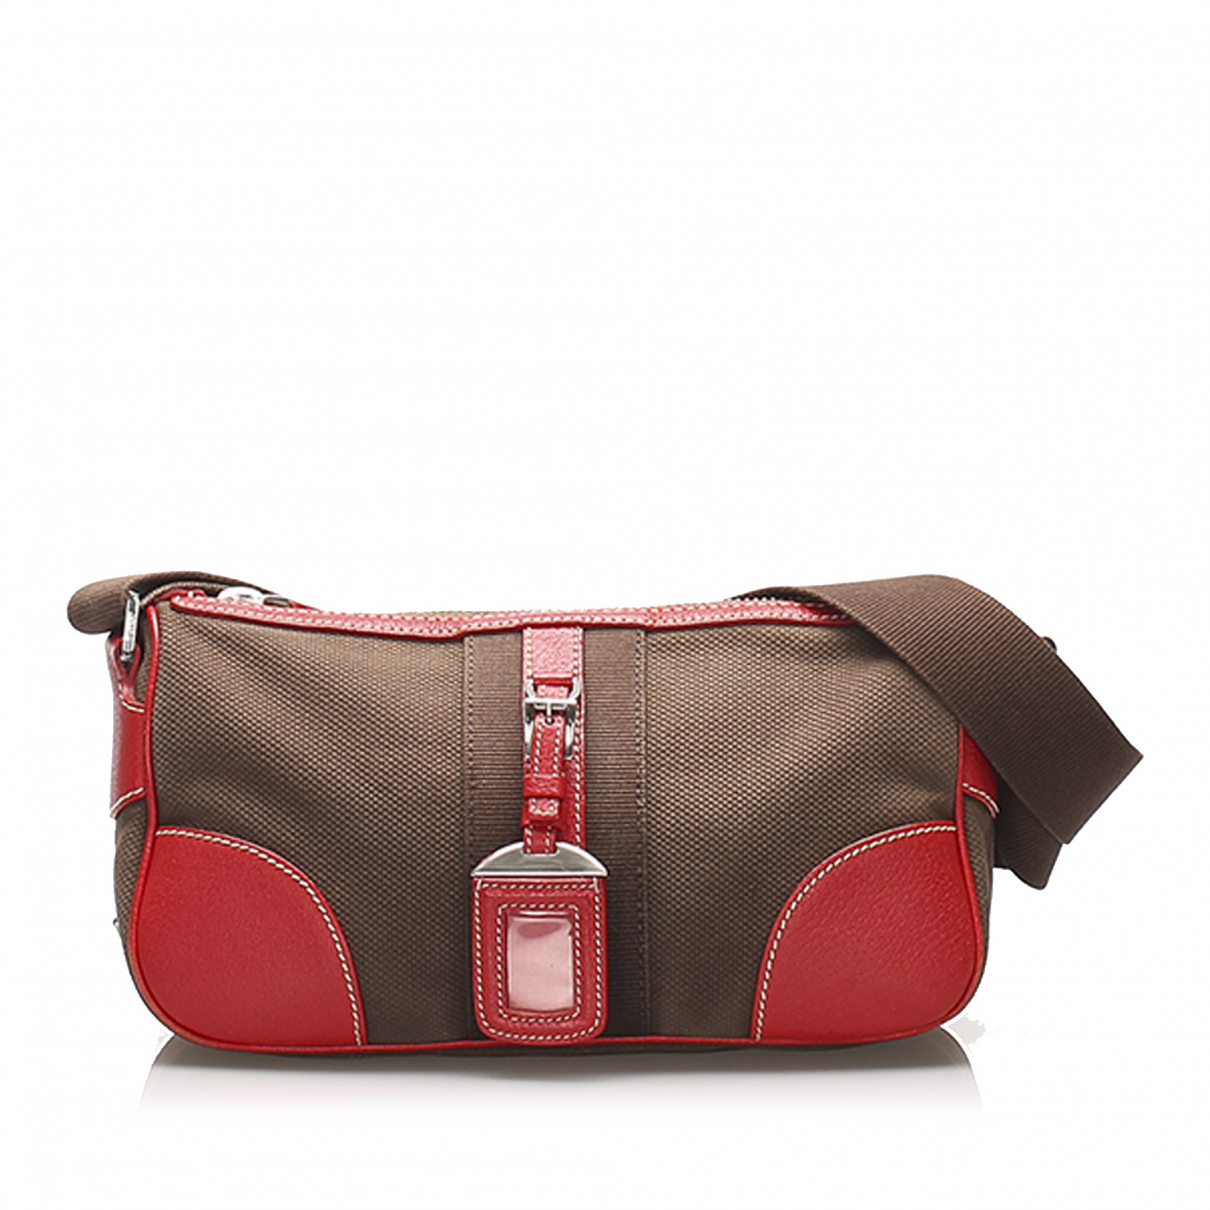 Prada N Brown Cloth handbag for Women N